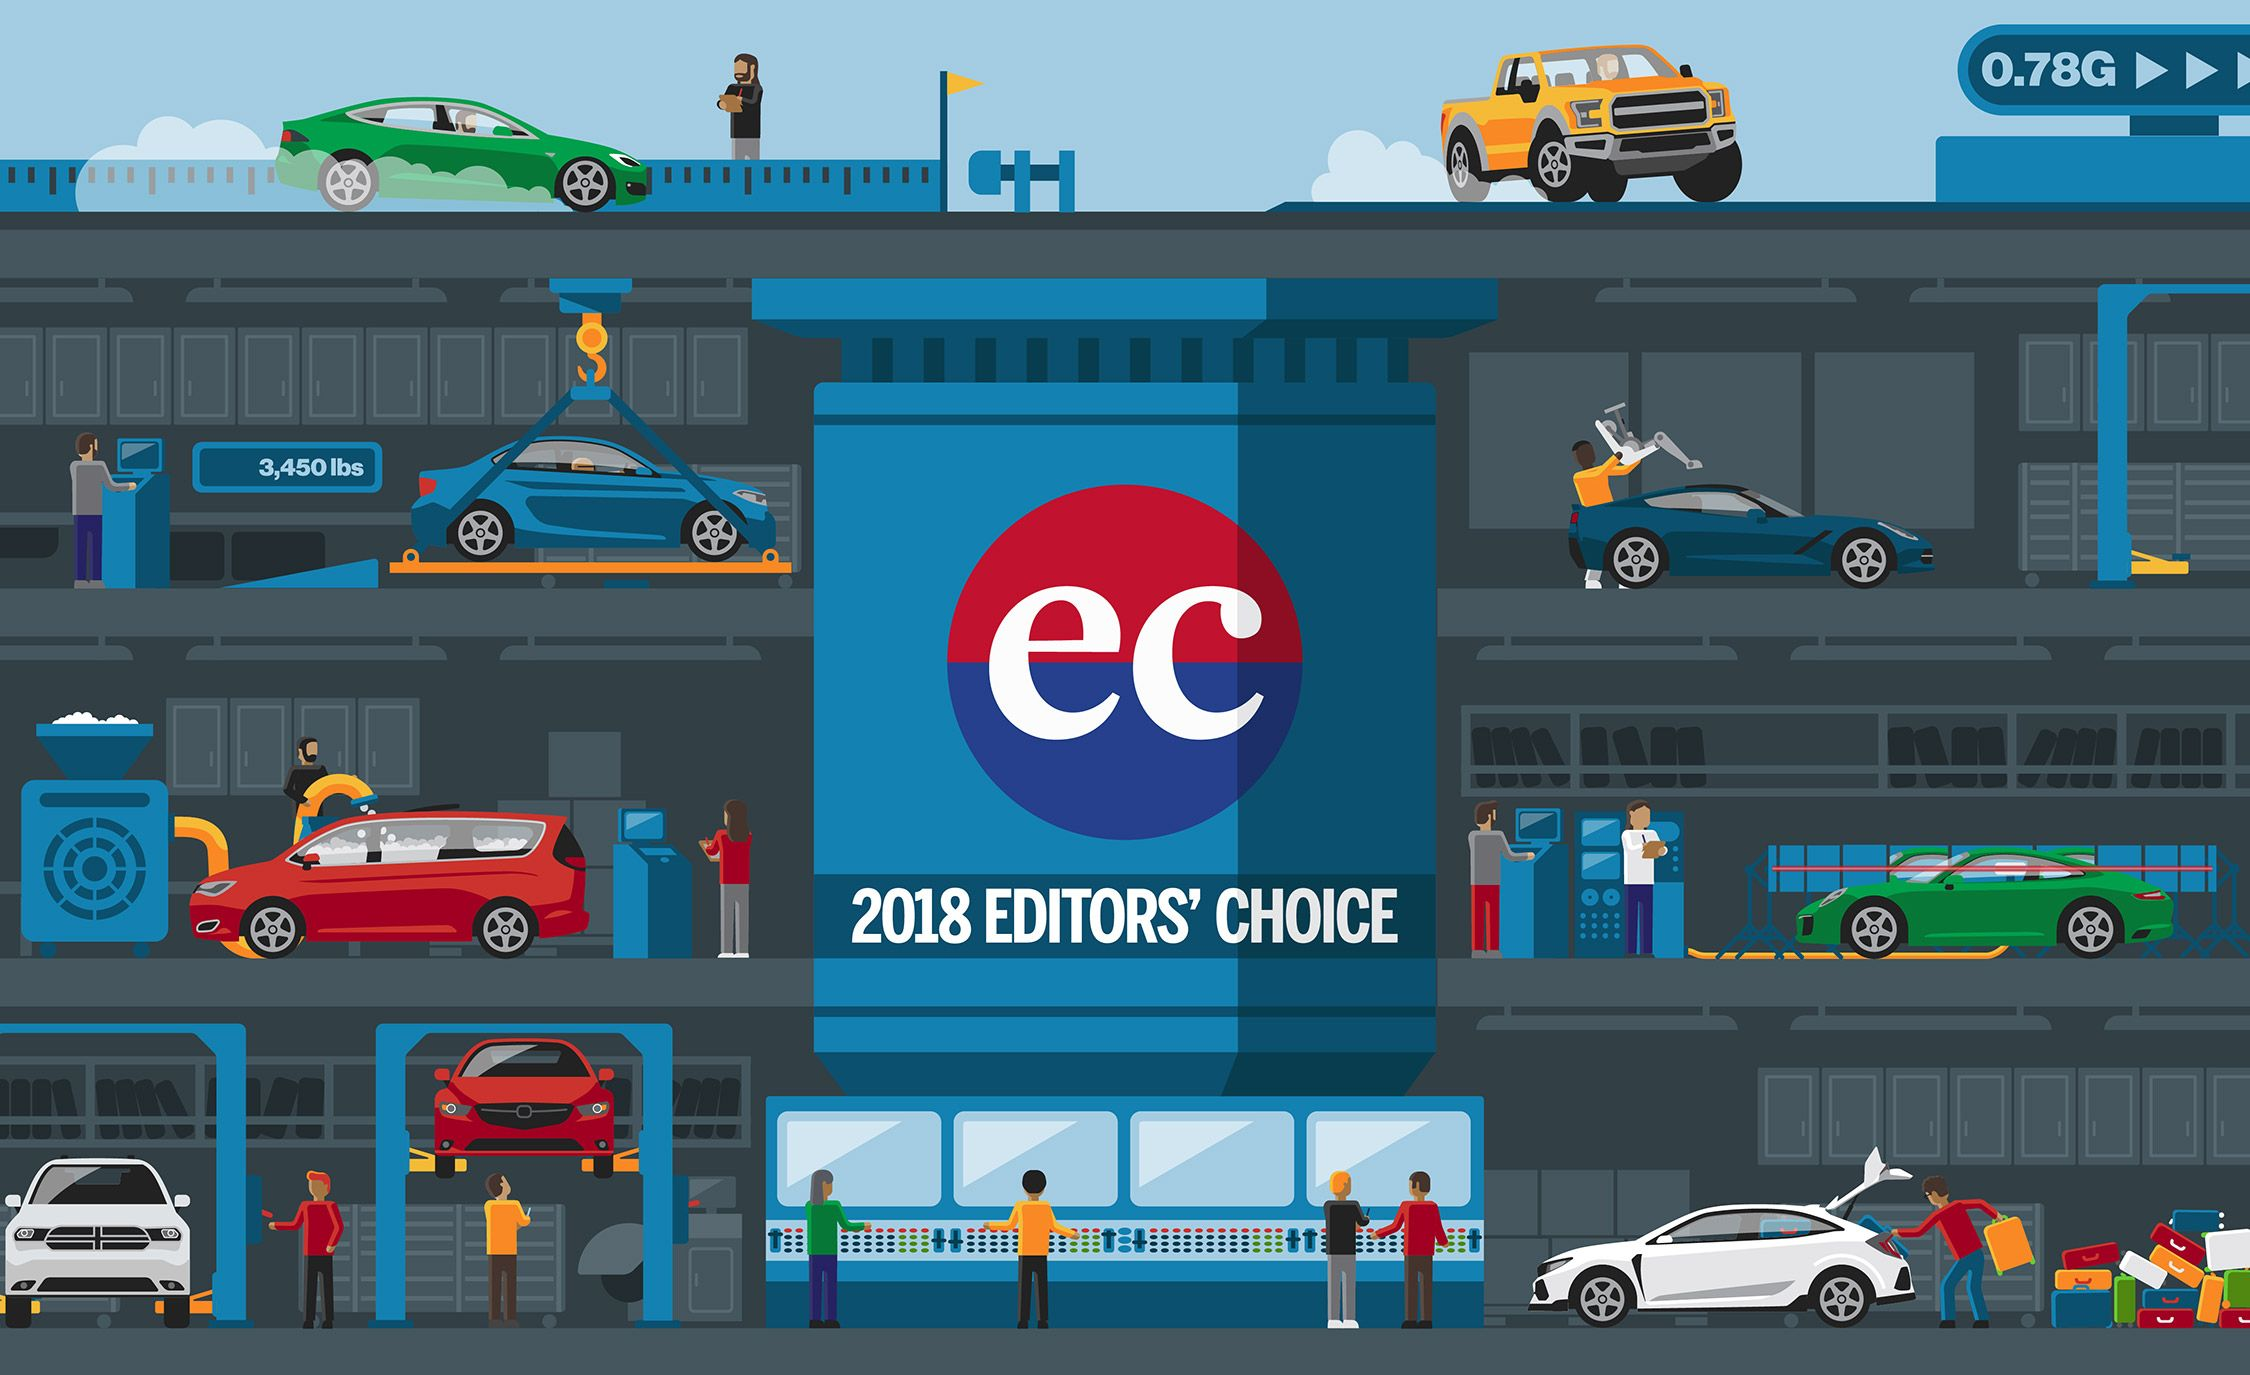 The Best Cars, Trucks, SUVs, And More For 2018: Editorsu0027 Choice